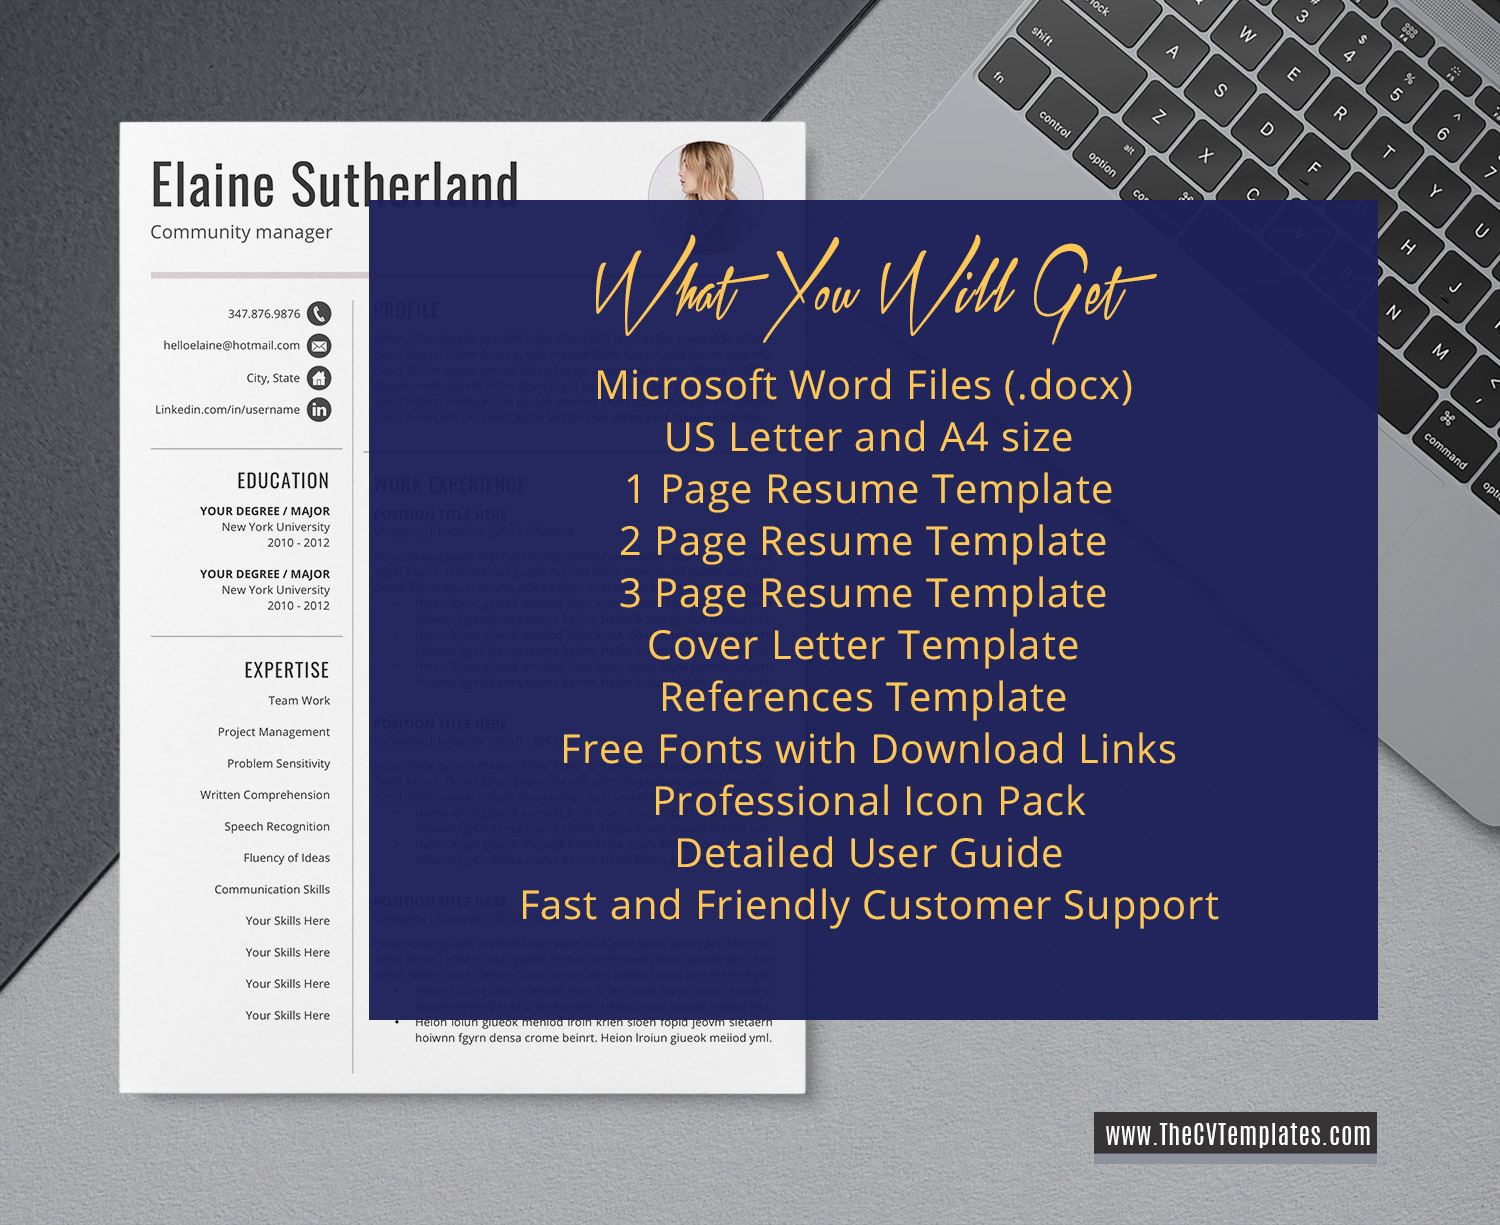 Microsoft Word References Template from www.thecvtemplates.com